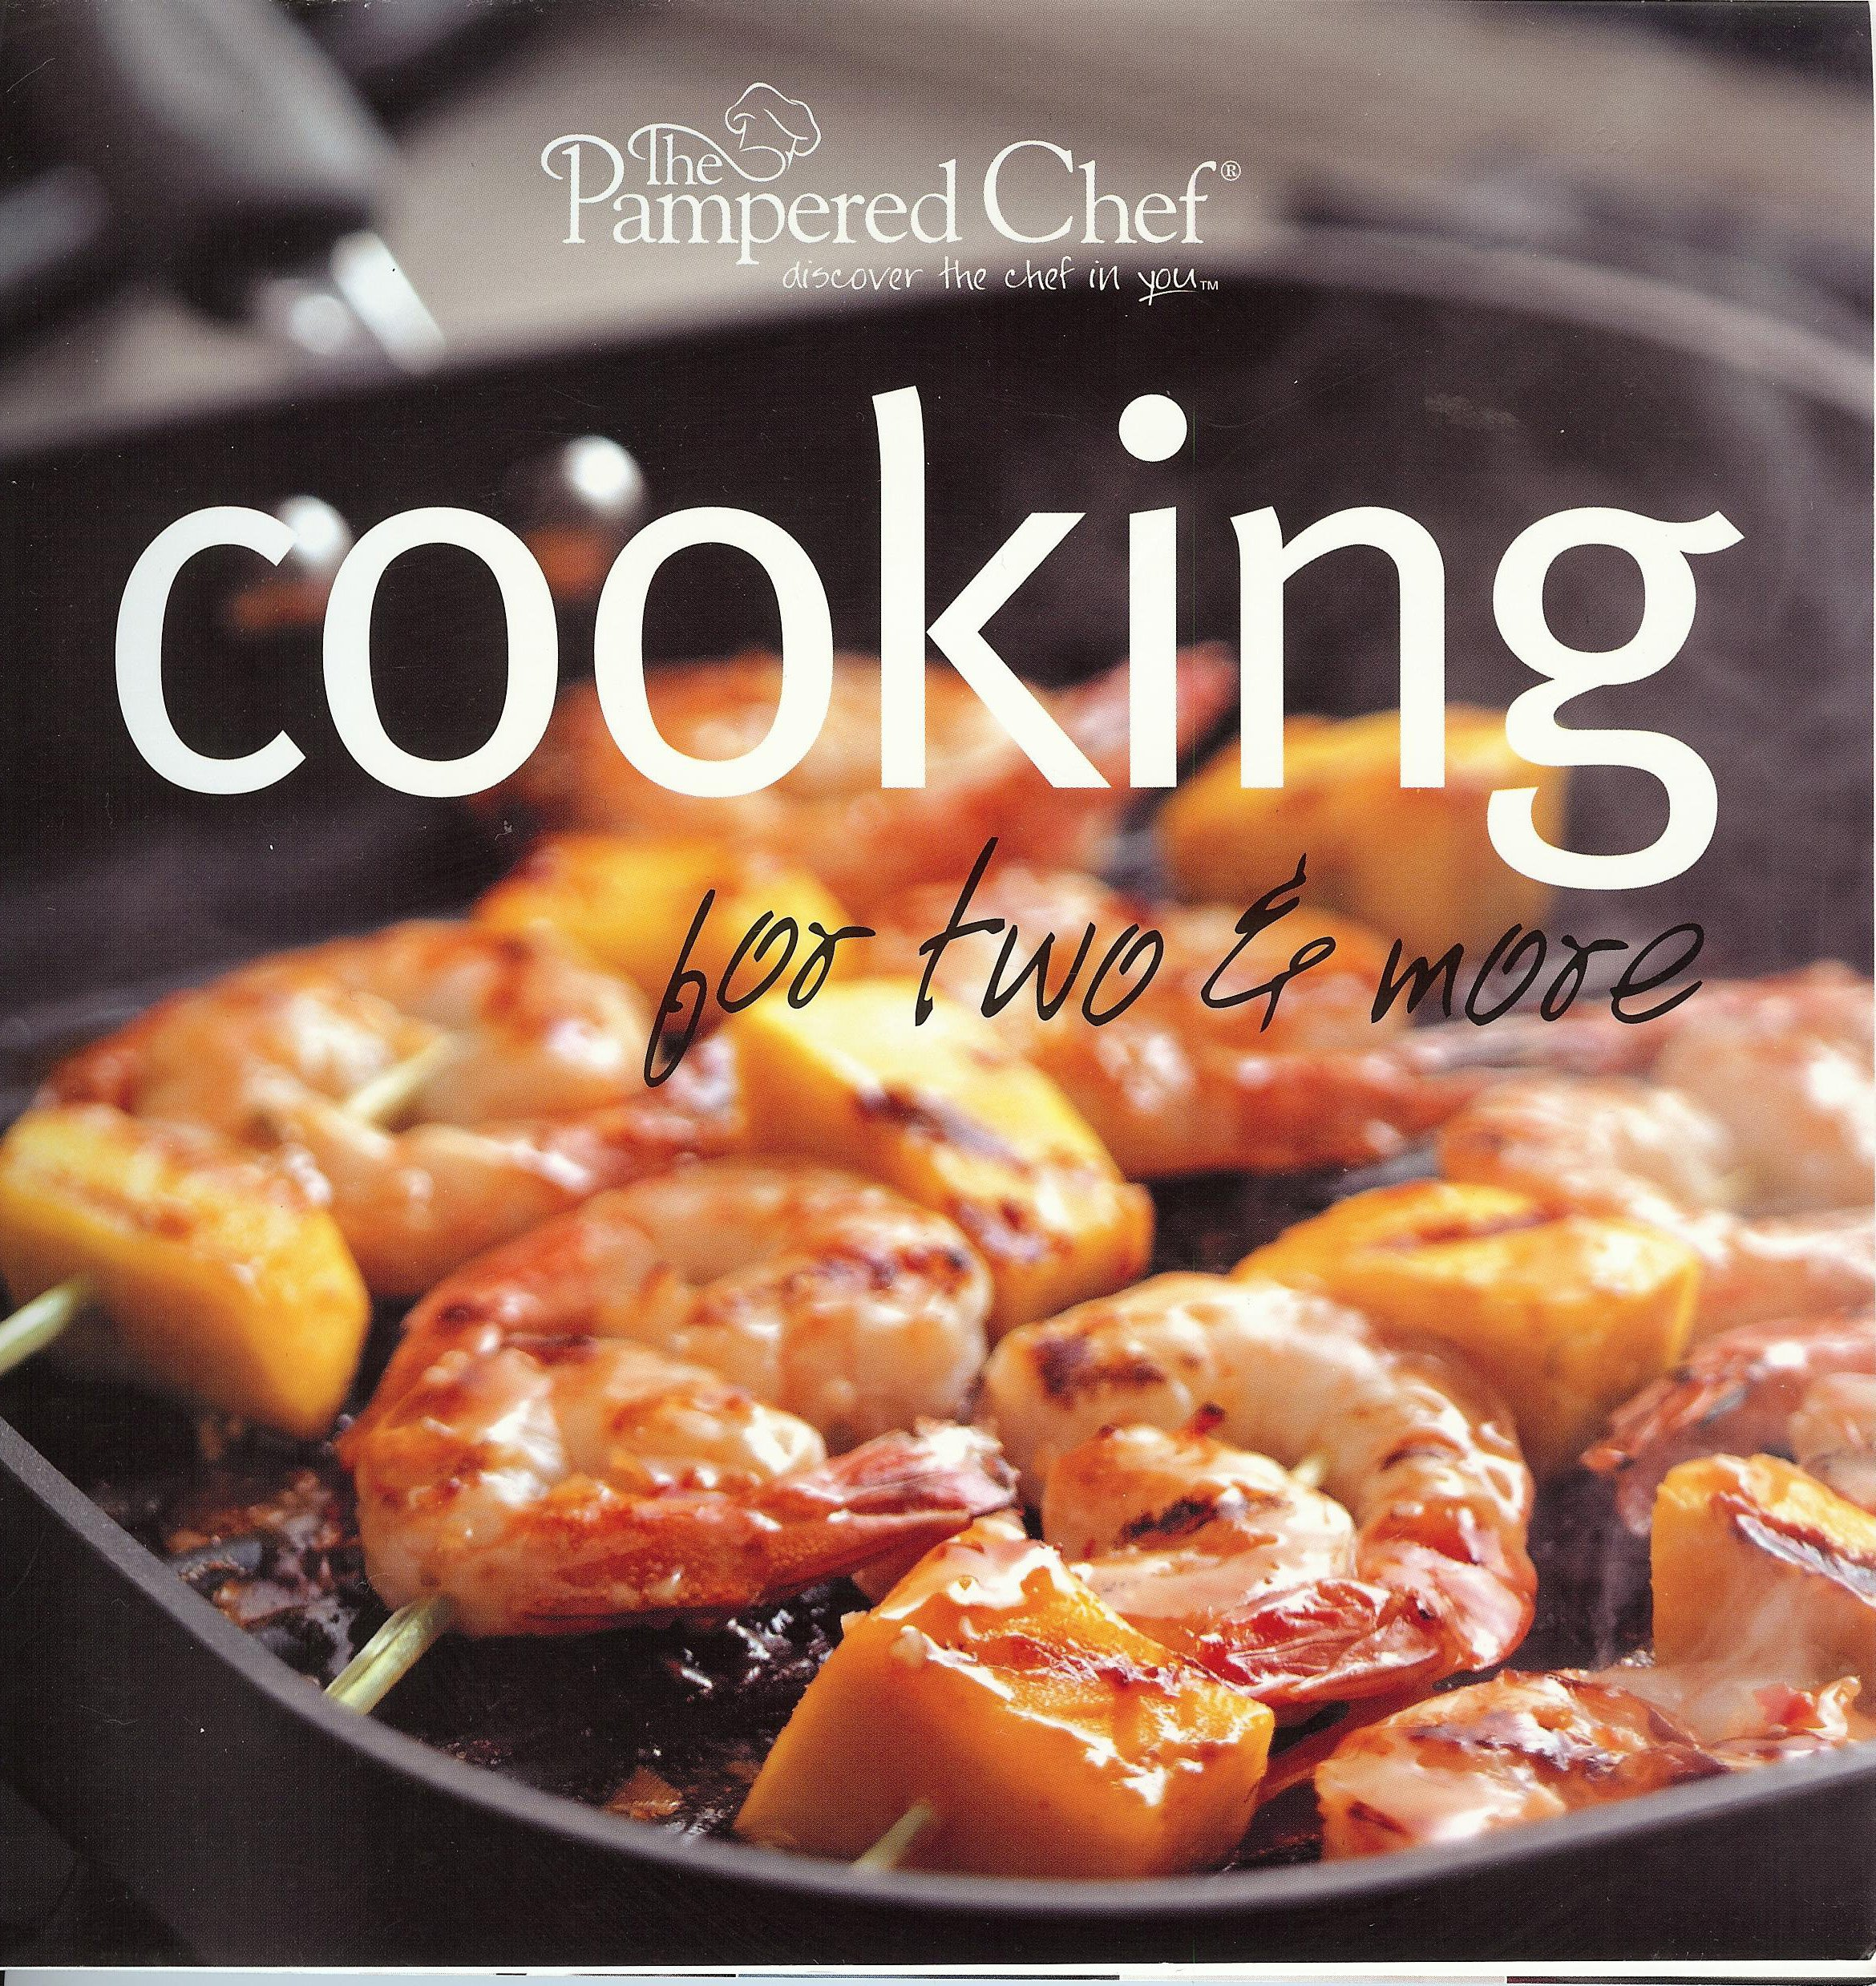 The Pampered Chef: Cooking For Two & More pdf